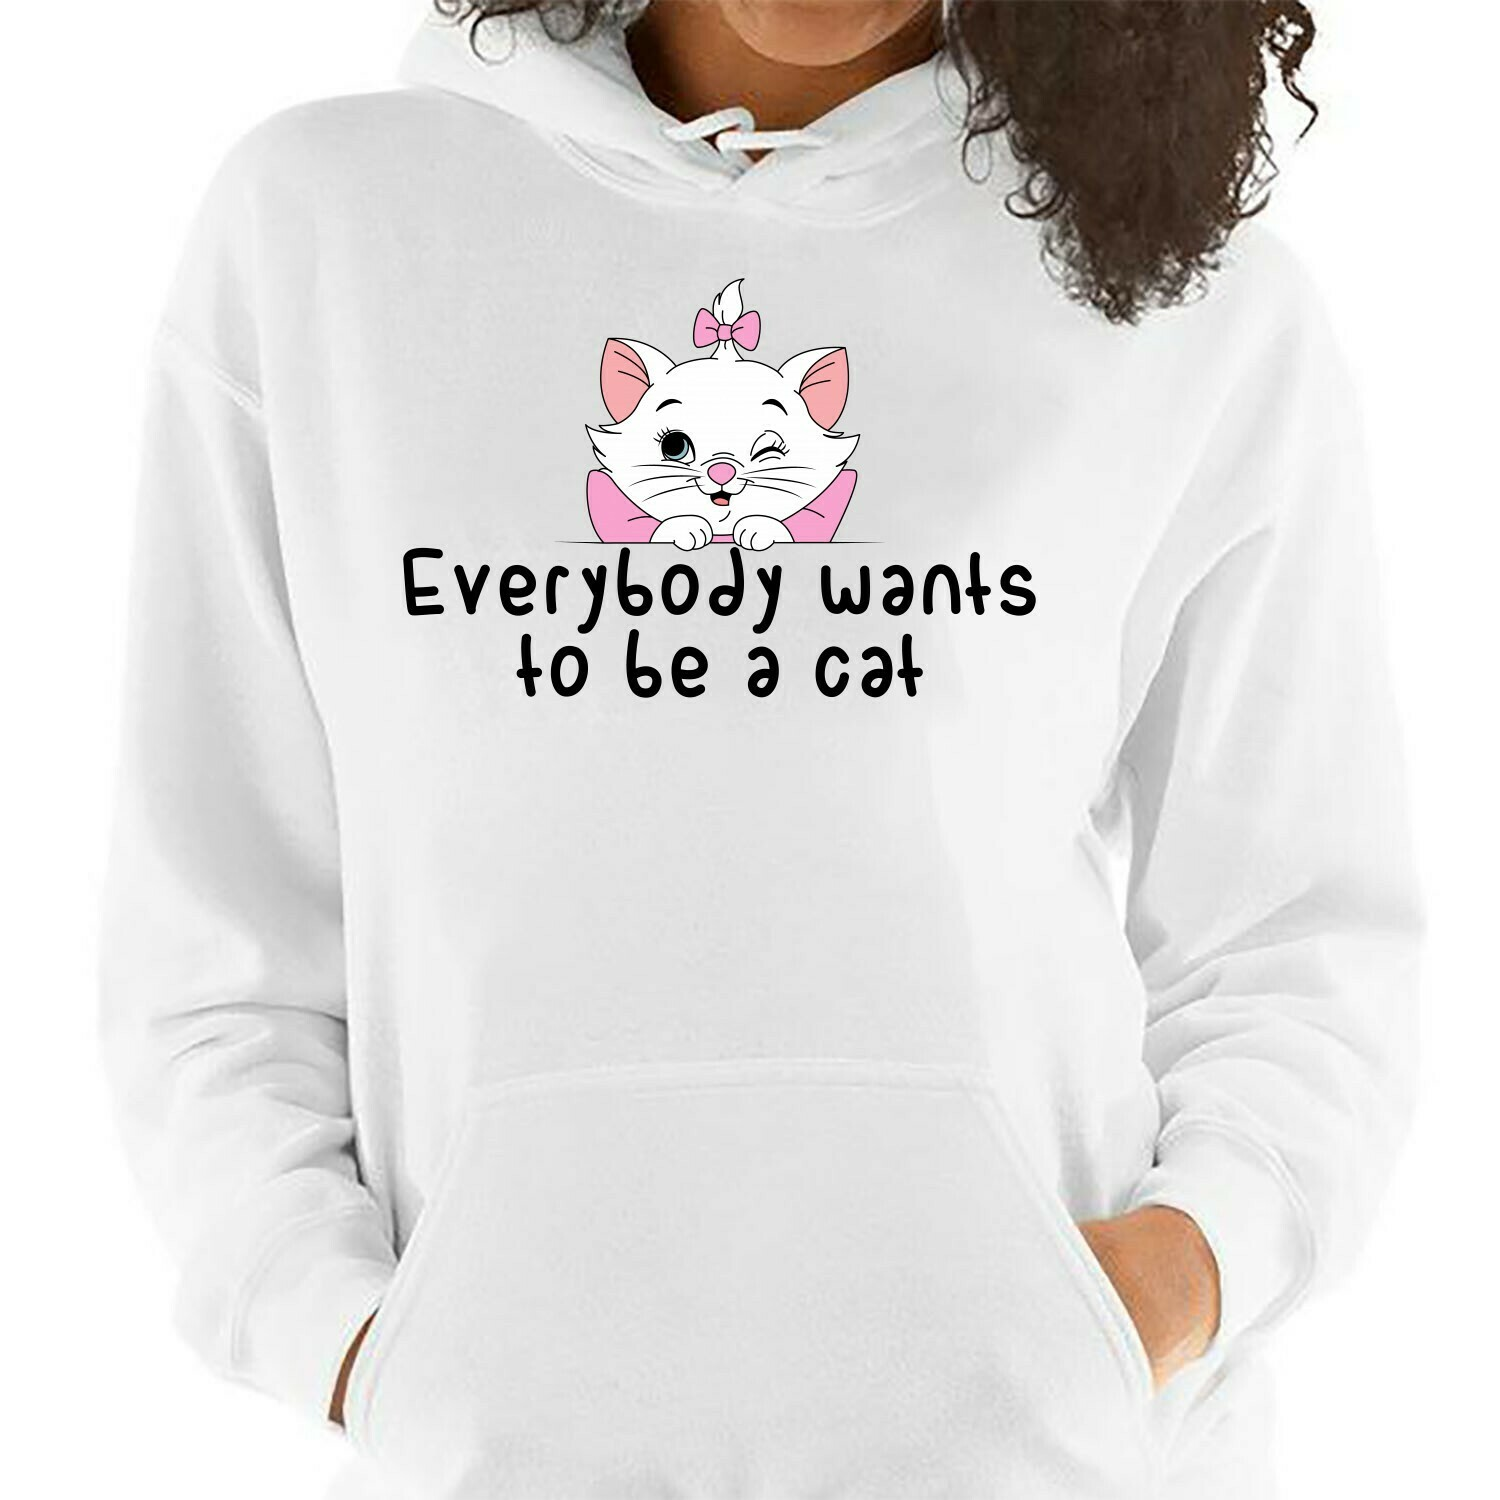 Disney Lady Aristocats Marie Everybody Wants To be A Cat T shirt,Walt Disney World,The Aristocats Movie,Disney Kitten Shirt,Cat Lovers Gifts Long Sleeve Sweatshirt Hoodie Jolly Family Gifts